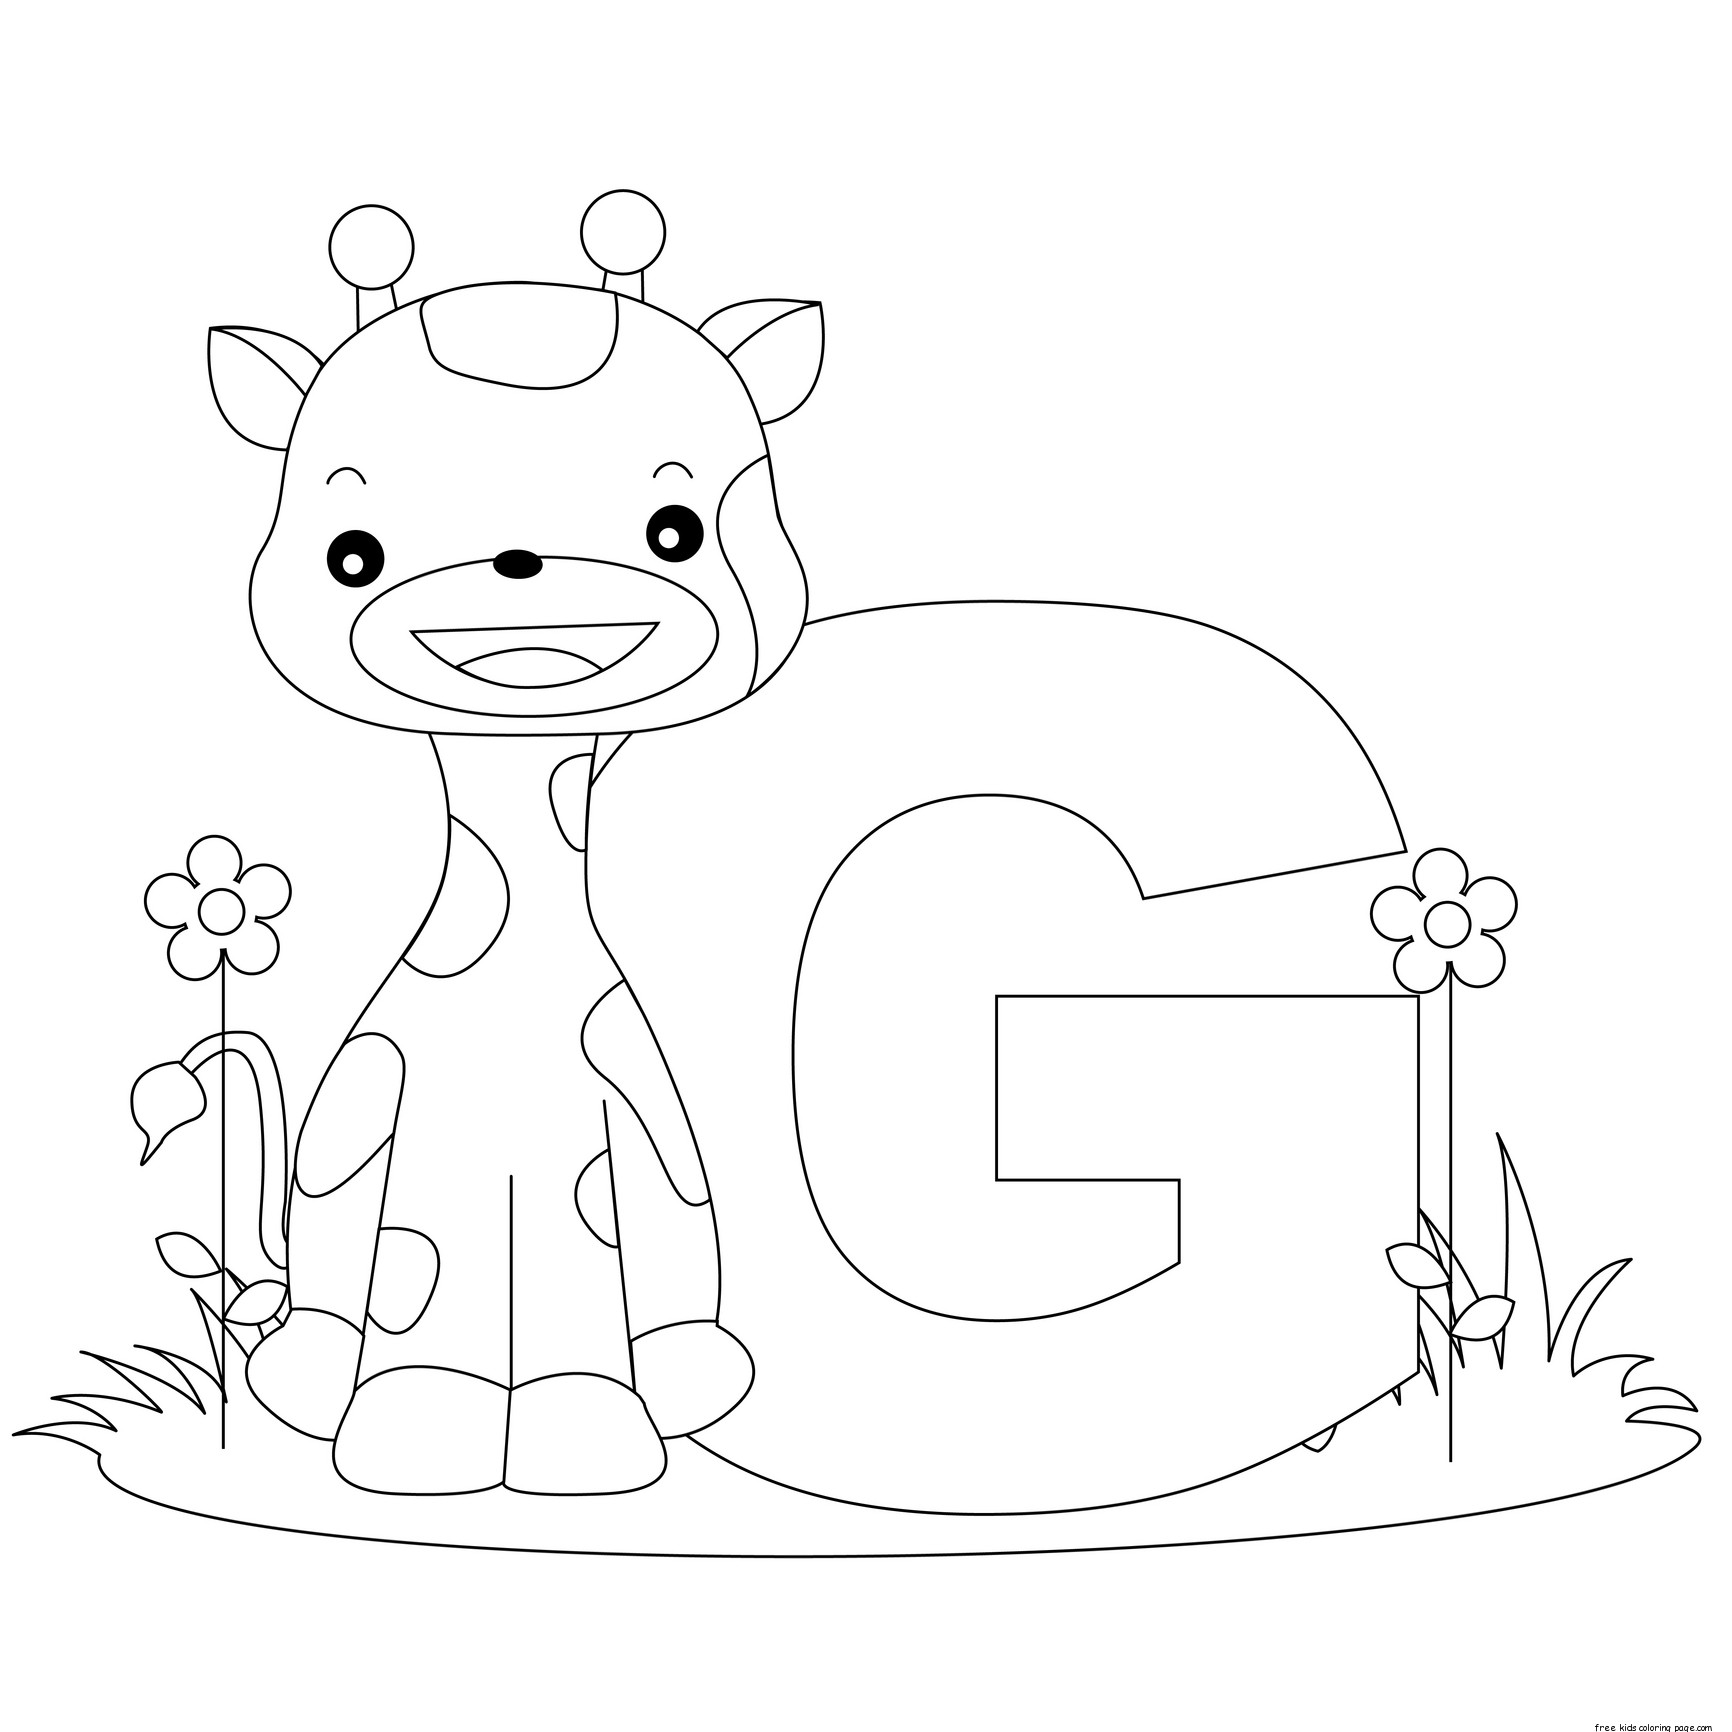 Alphabet letter g for preschool activities worksheetsfree for Alphabet pages to color